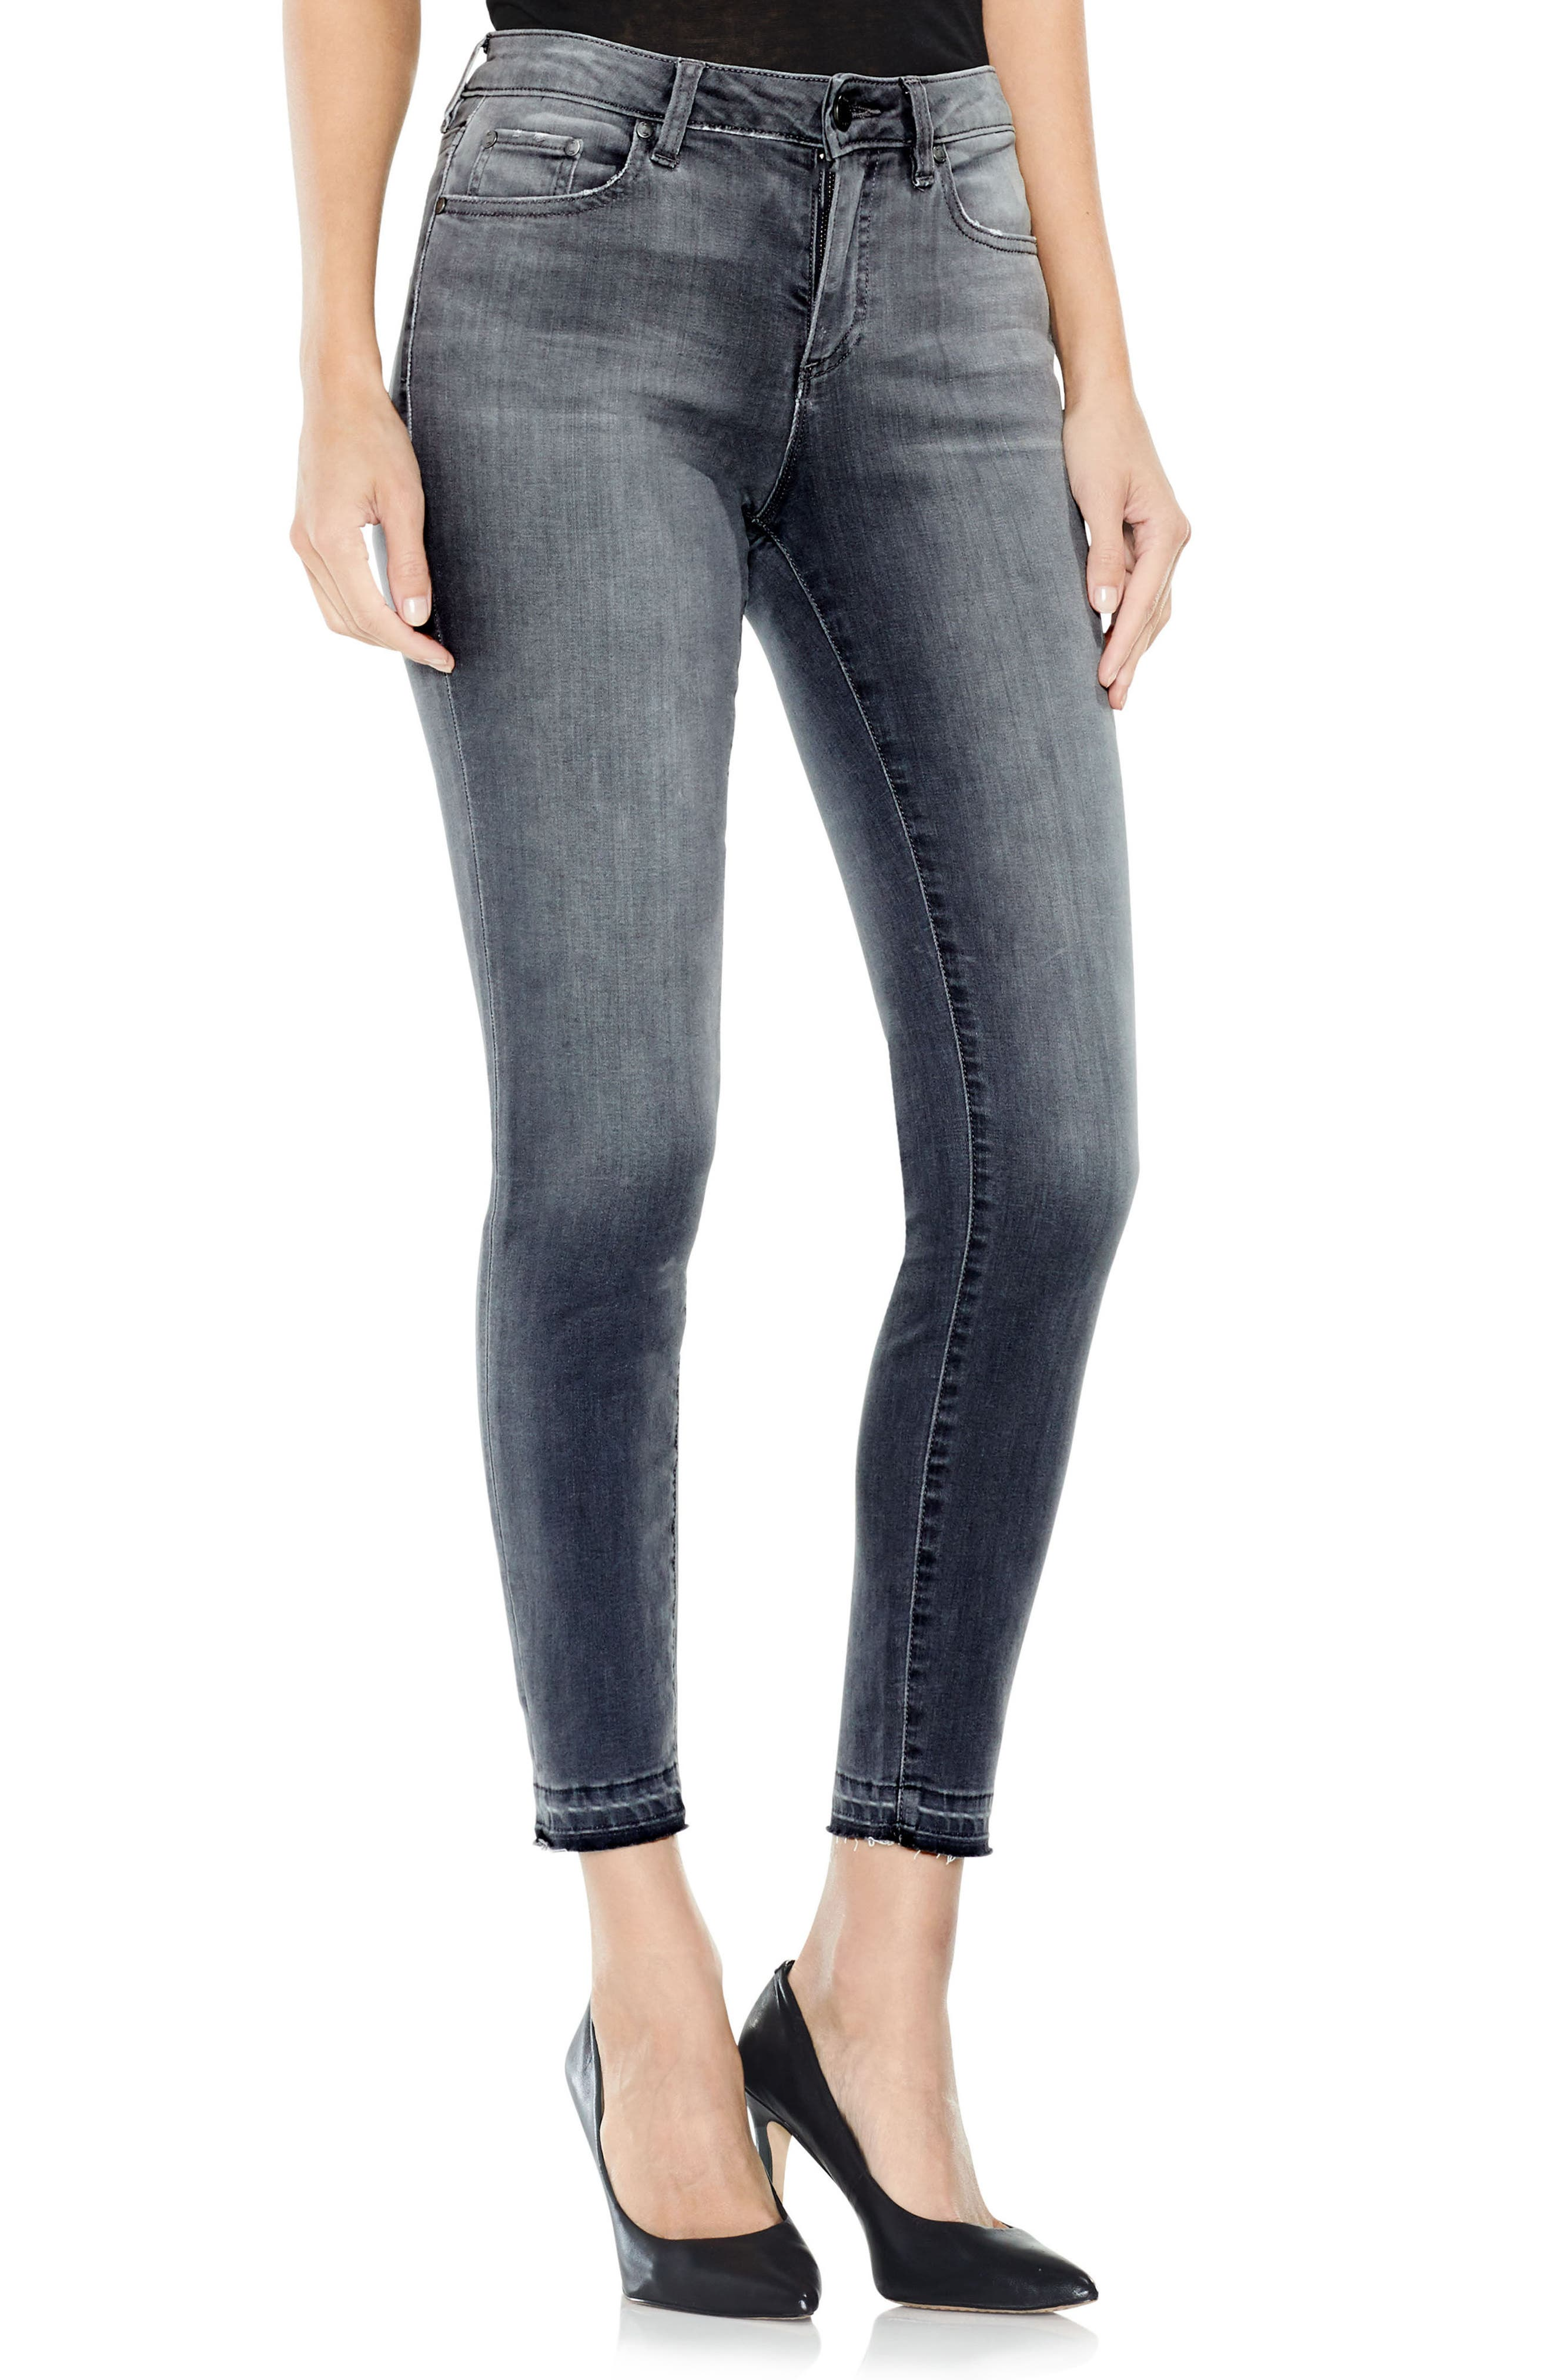 Two by Vince Camuto Grey Released Hem Jeans,                             Main thumbnail 1, color,                             COBBLESTONE